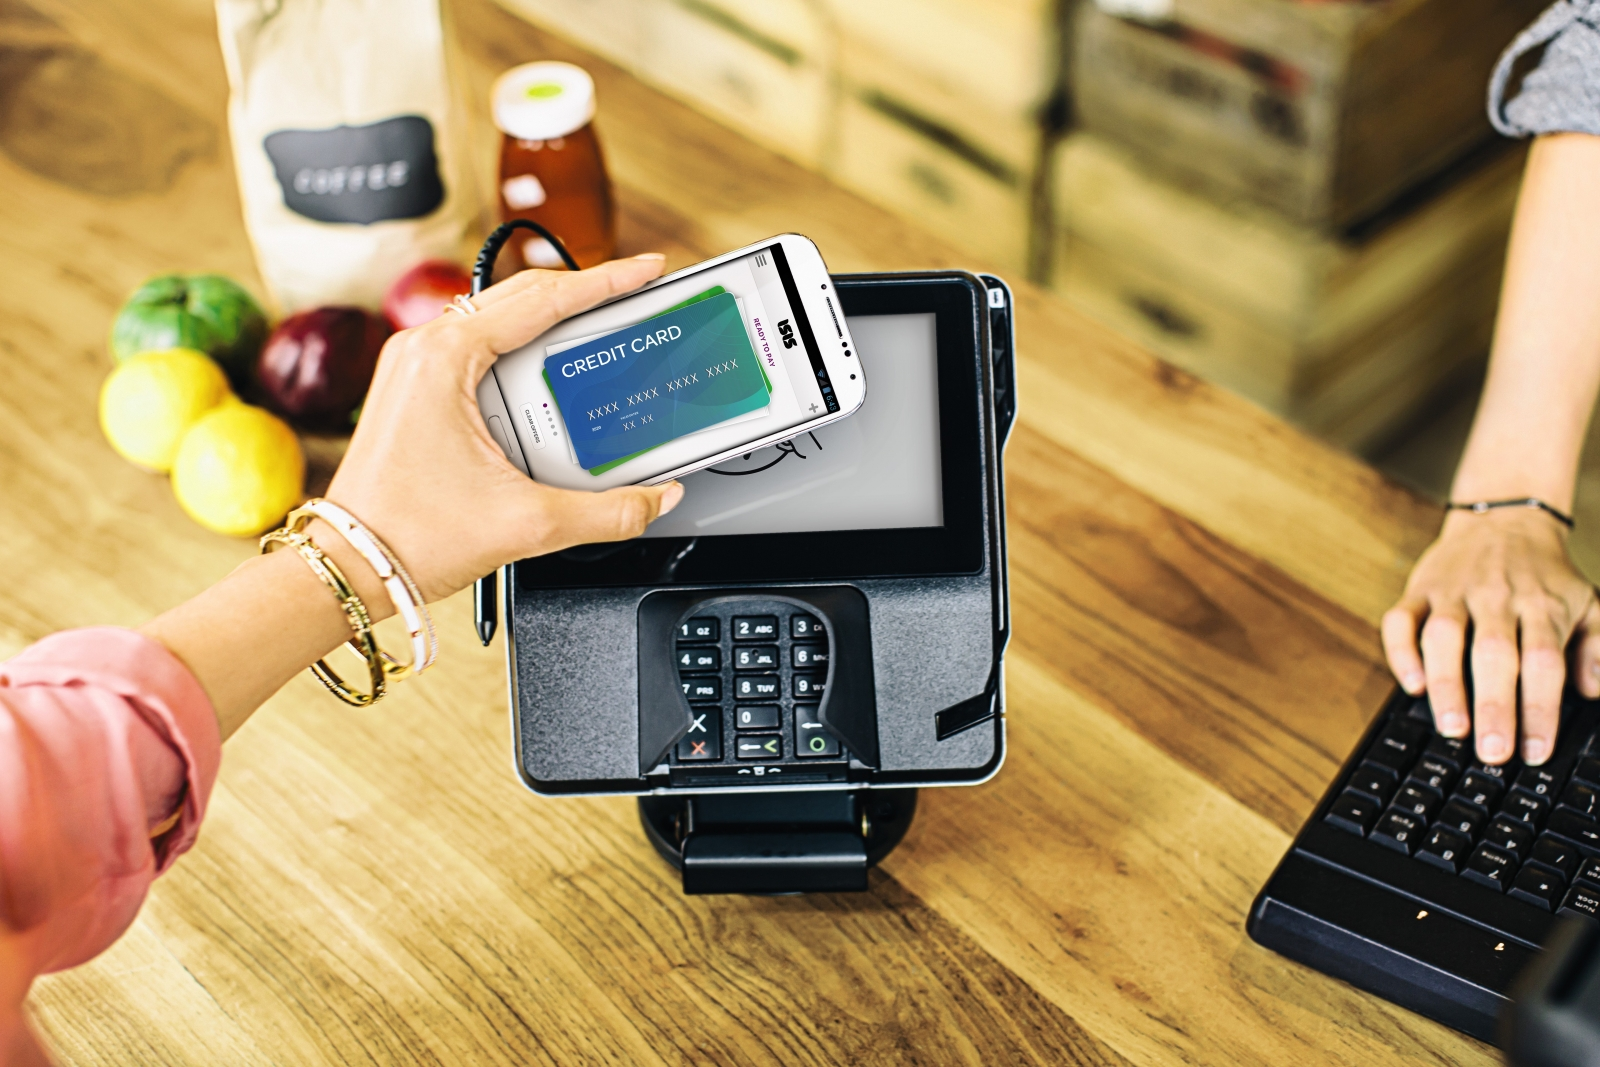 Google in talks to buy mobile payments firm Softcard at less than $100m